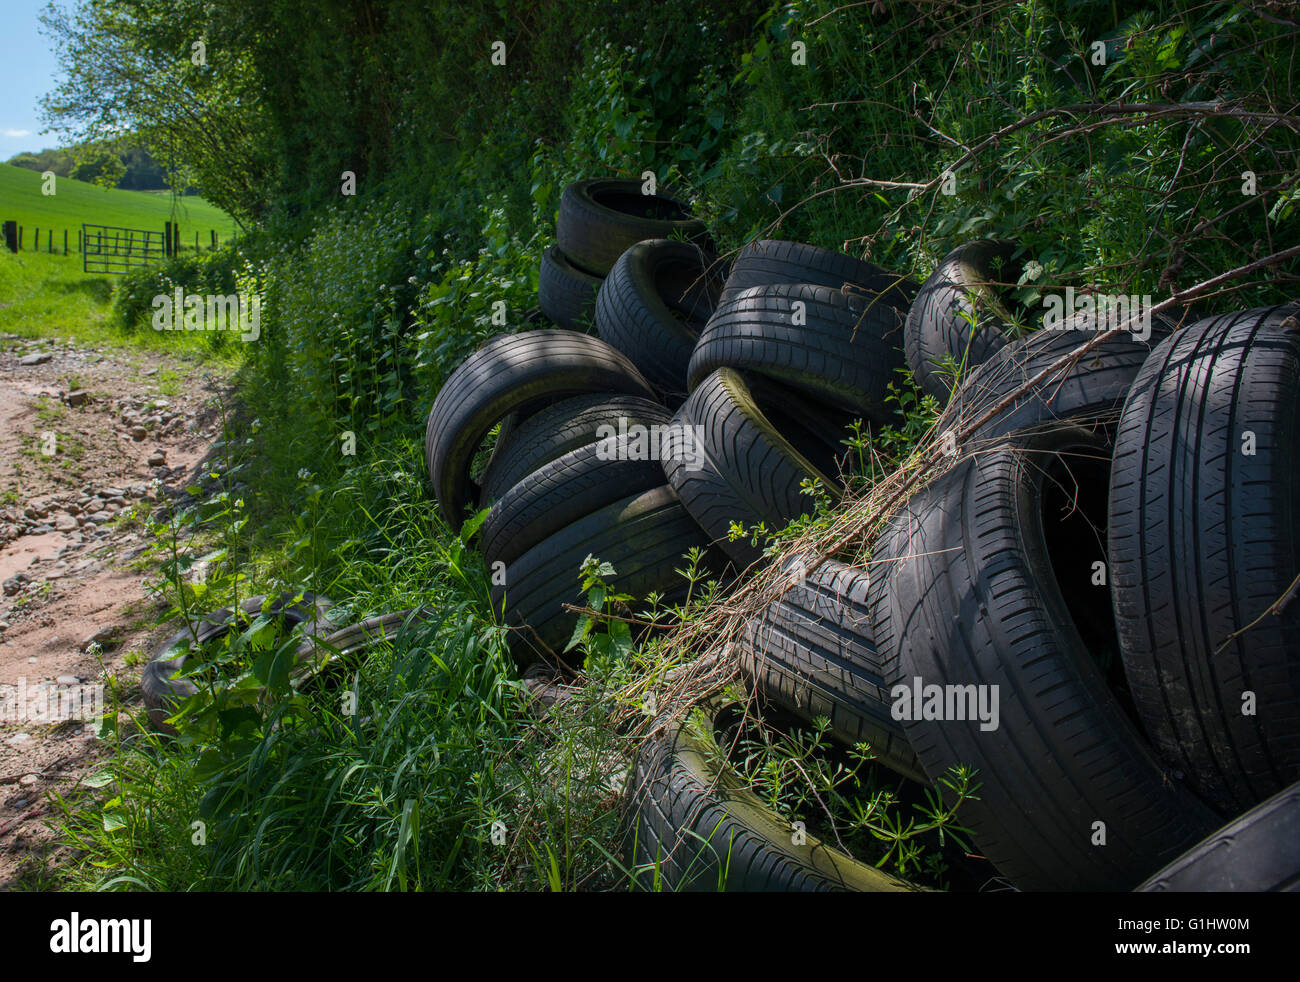 A pile of tyres next to a farm track in Shropshire, England, UK. - Stock Image